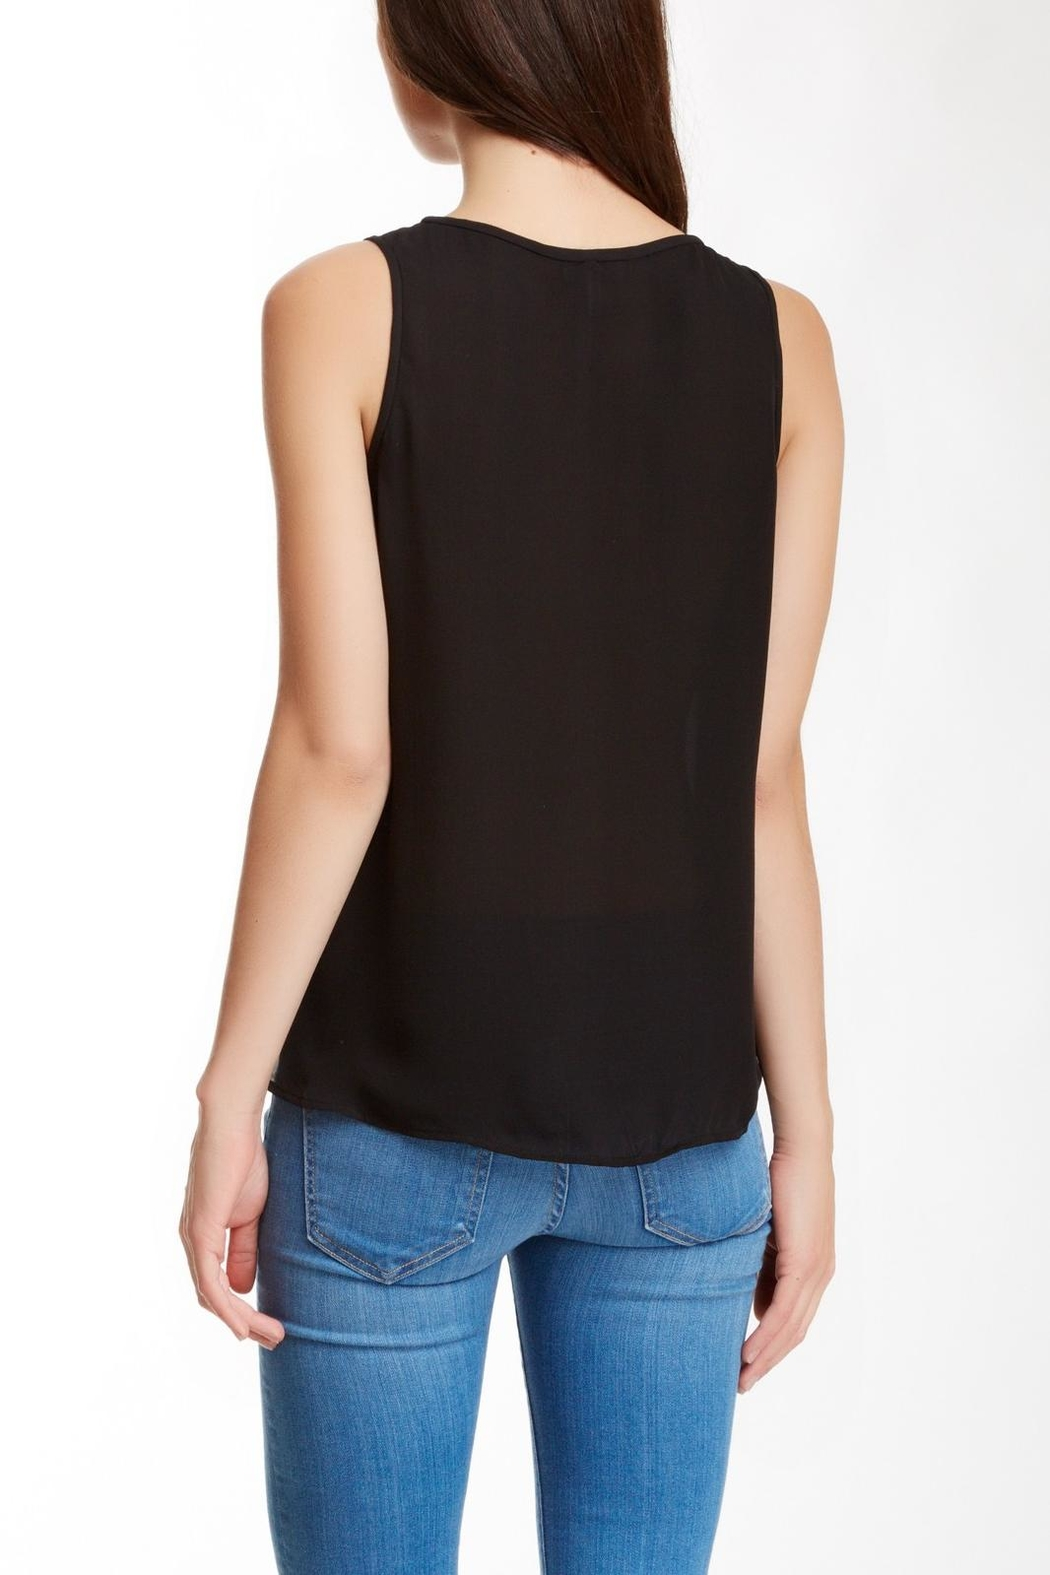 Joie Loriann Top - Front Full Image